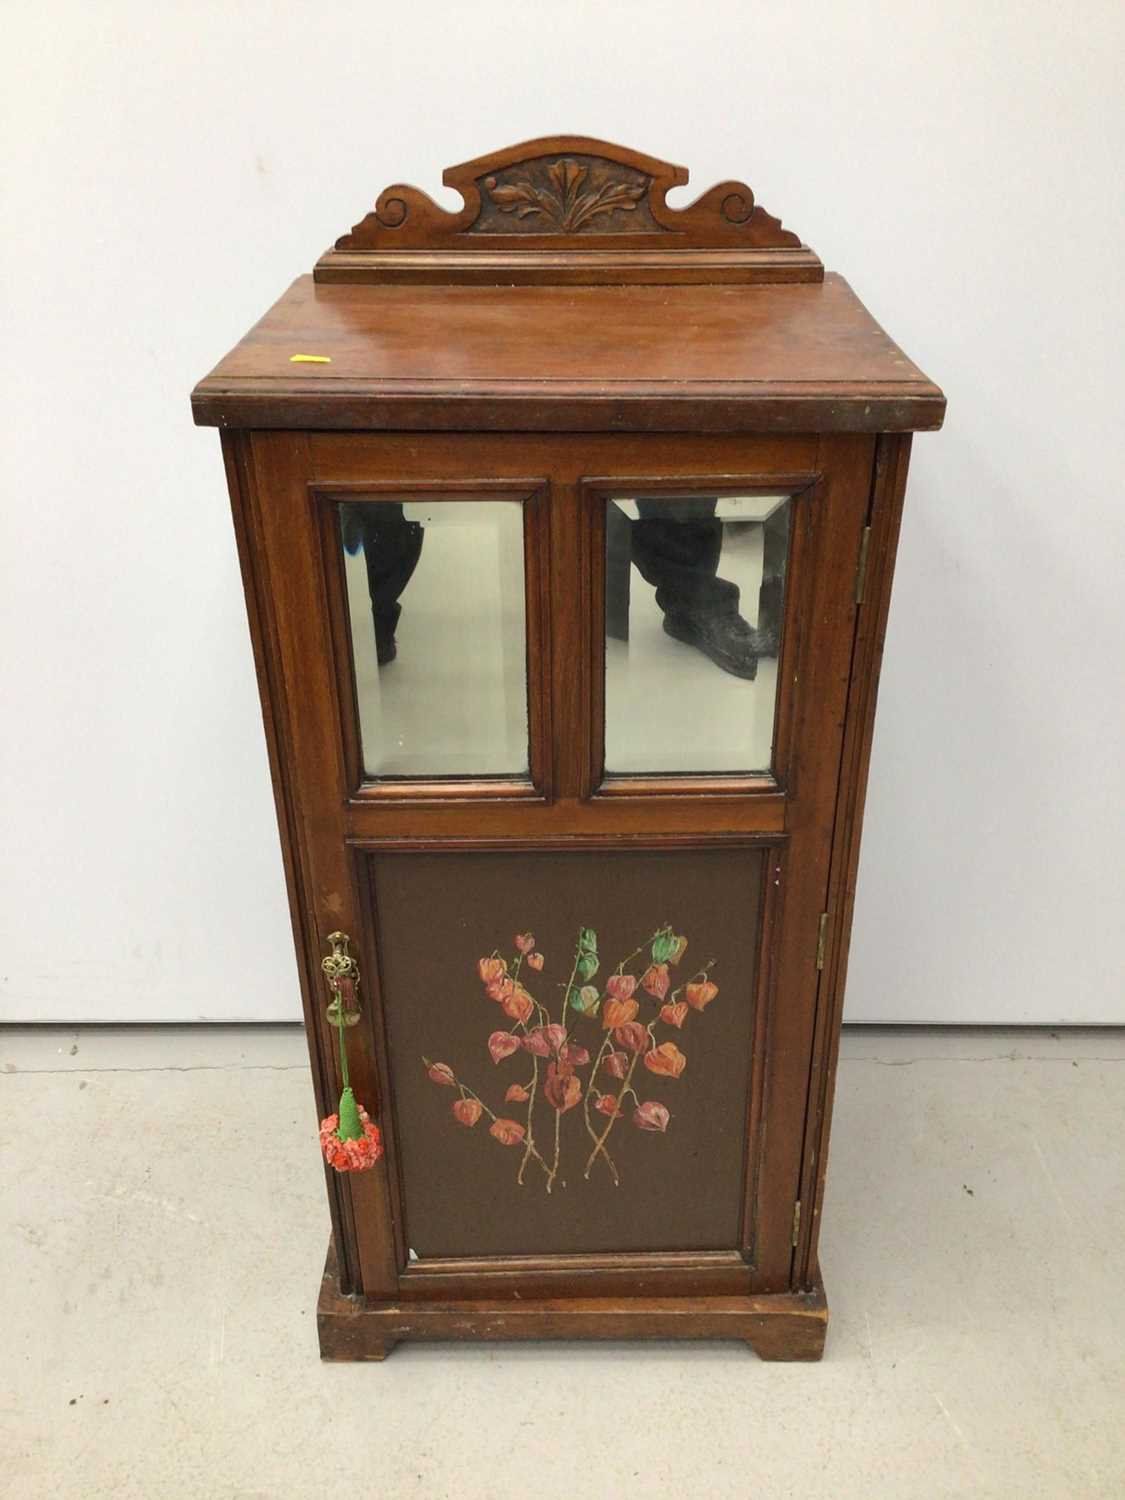 Lot 18 - Edwardian walnut pot cupboard with ledge back, two bevelled mirror plates and painted door below, 45.5cm wide x 34cm deep x 100cm high